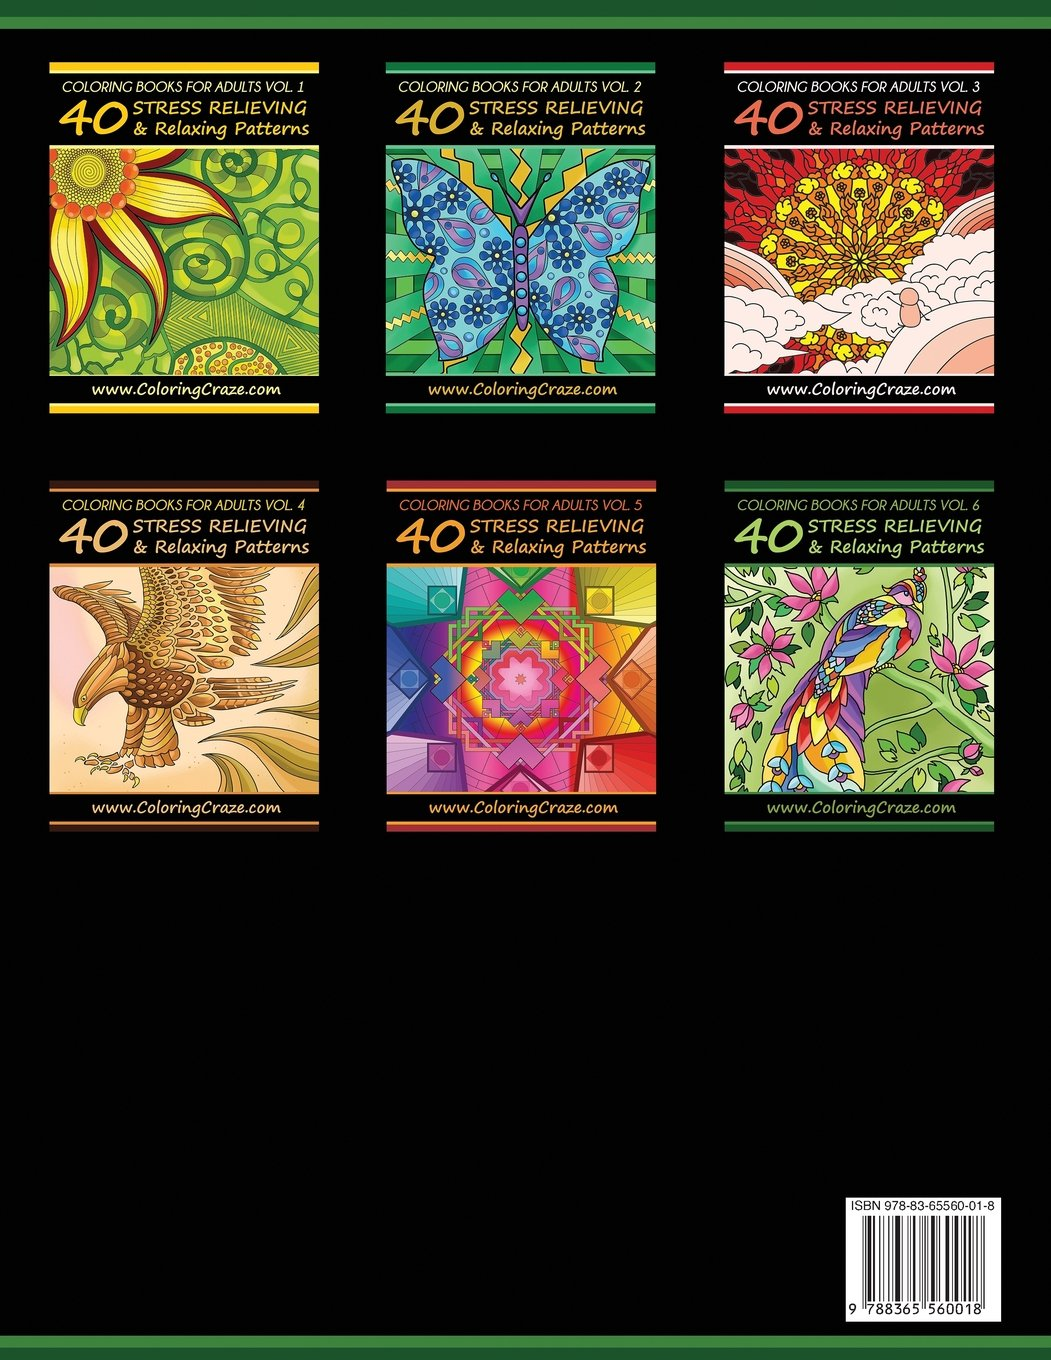 Coloring Books For Adults Volume 6 40 Stress Relieving And Relaxing Patterns Adult Series By ColoringCraze